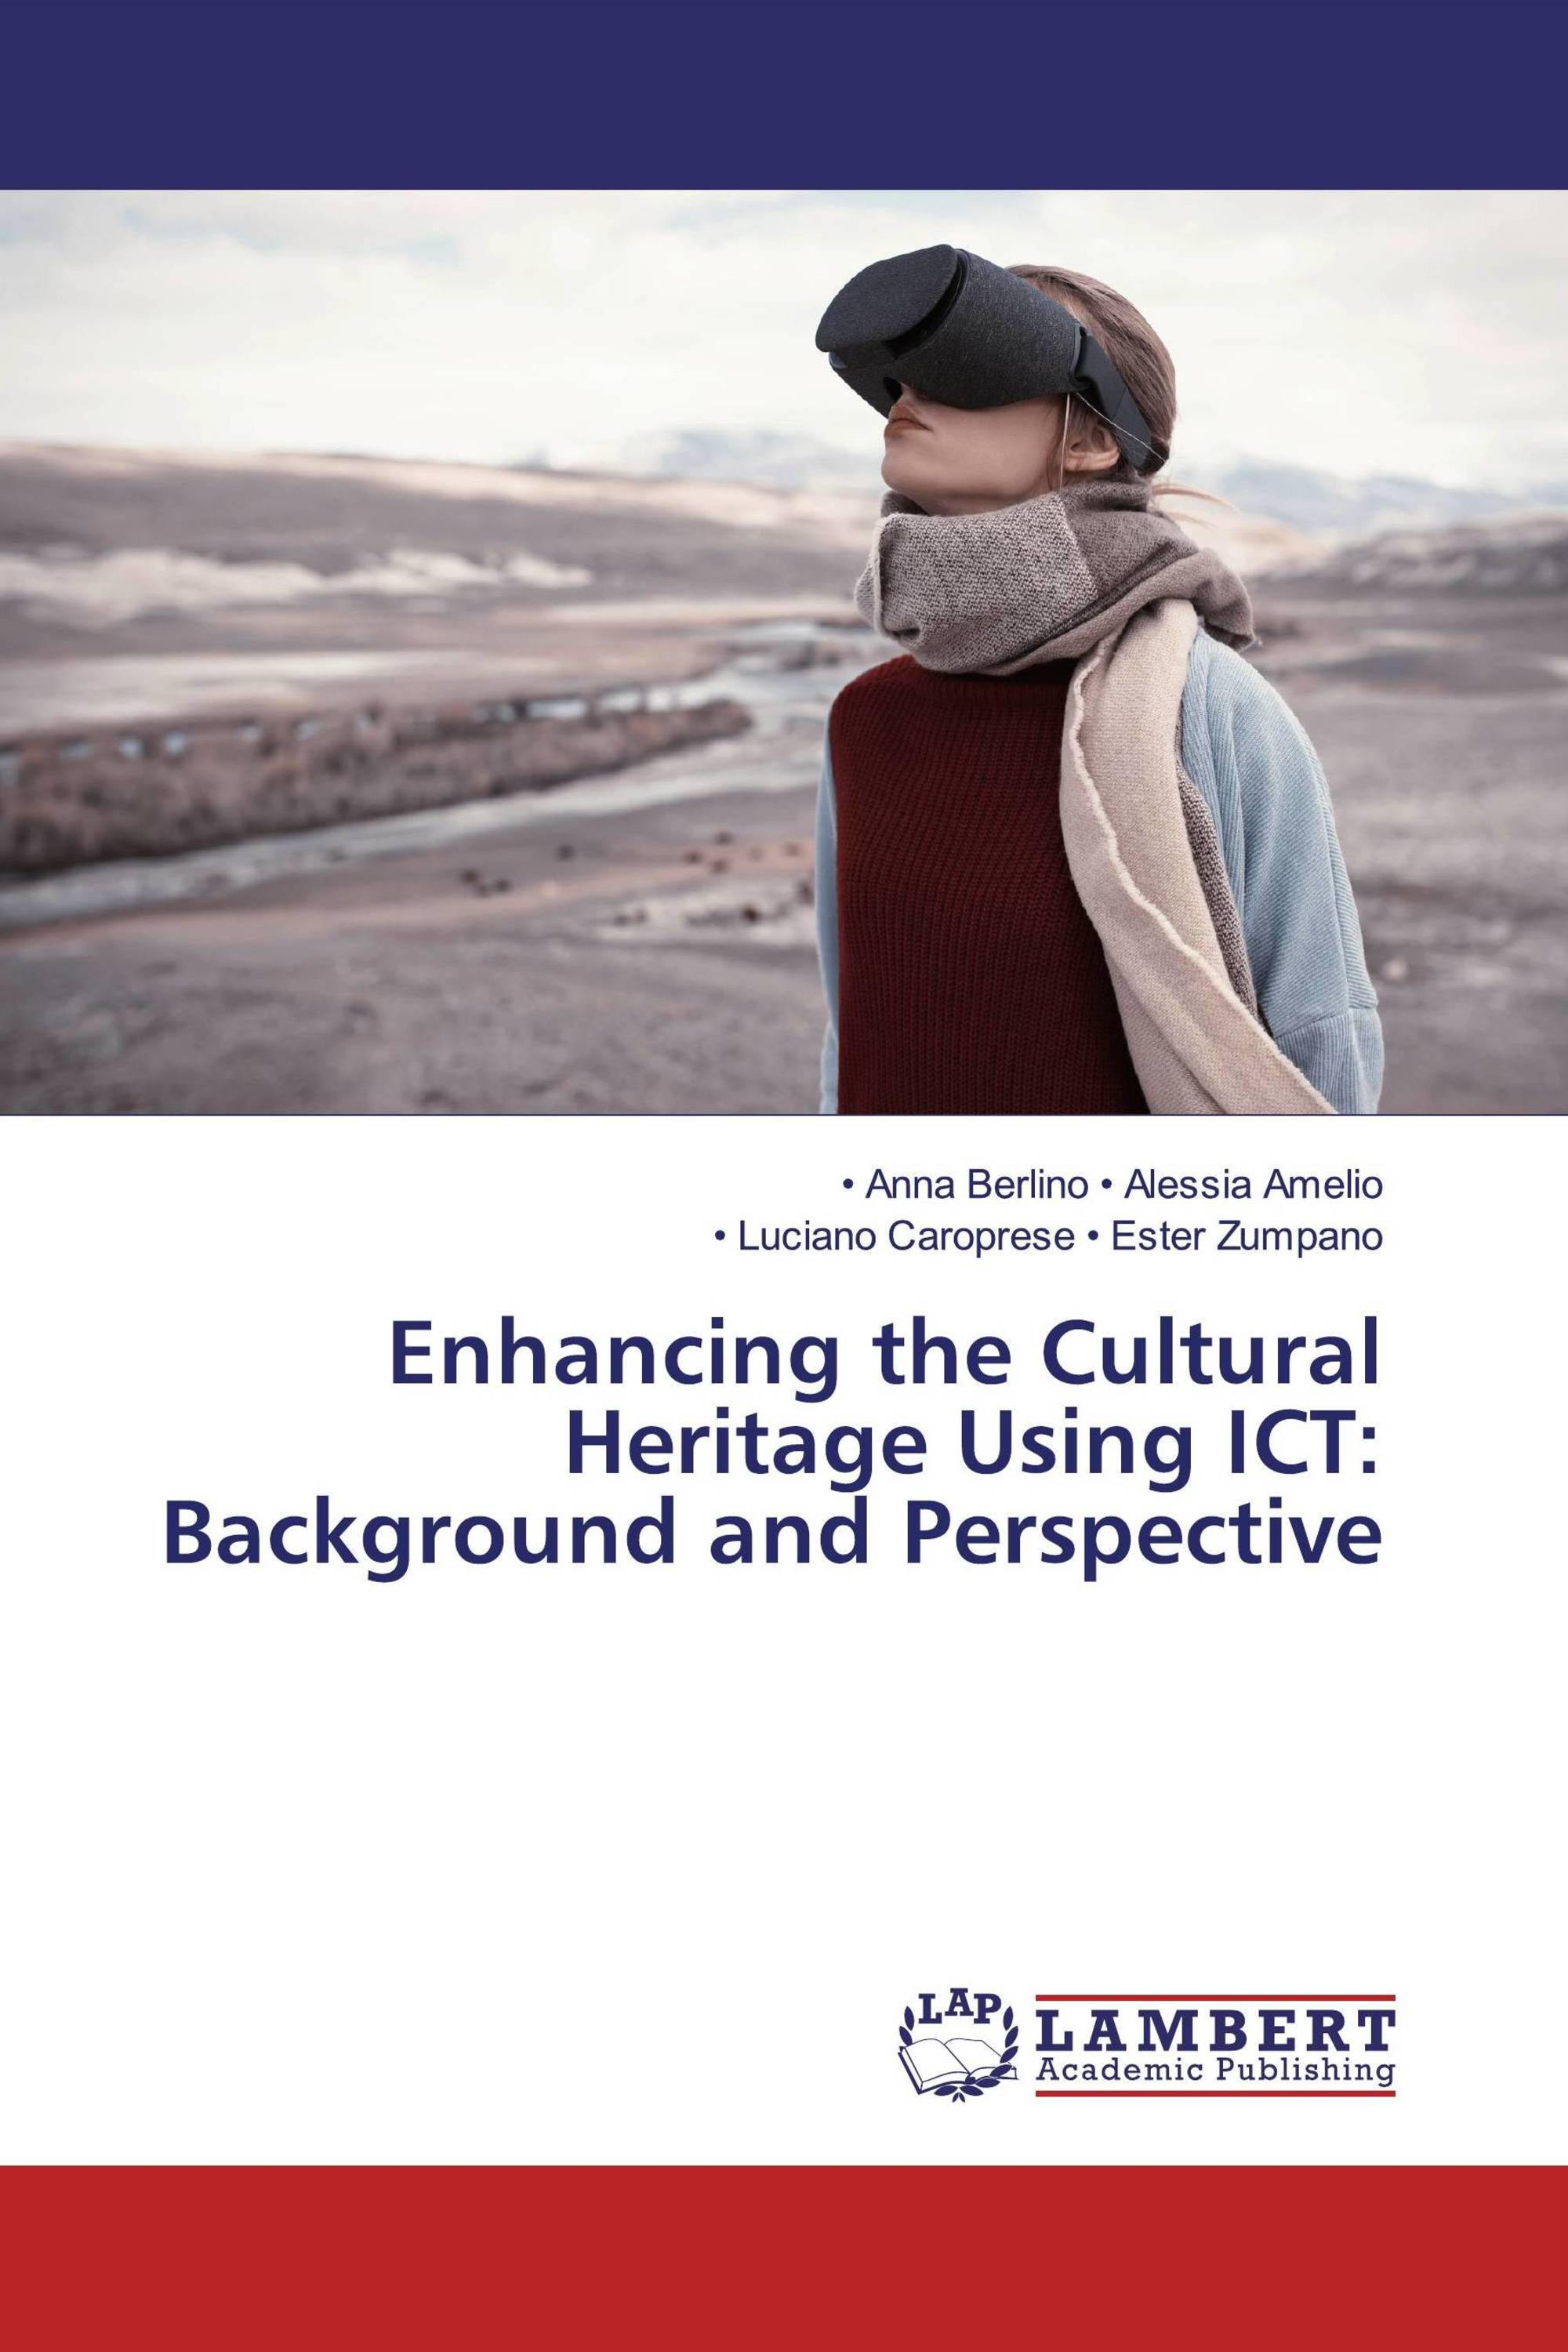 Enhancing the Cultural Heritage Using ICT: Background and Perspective